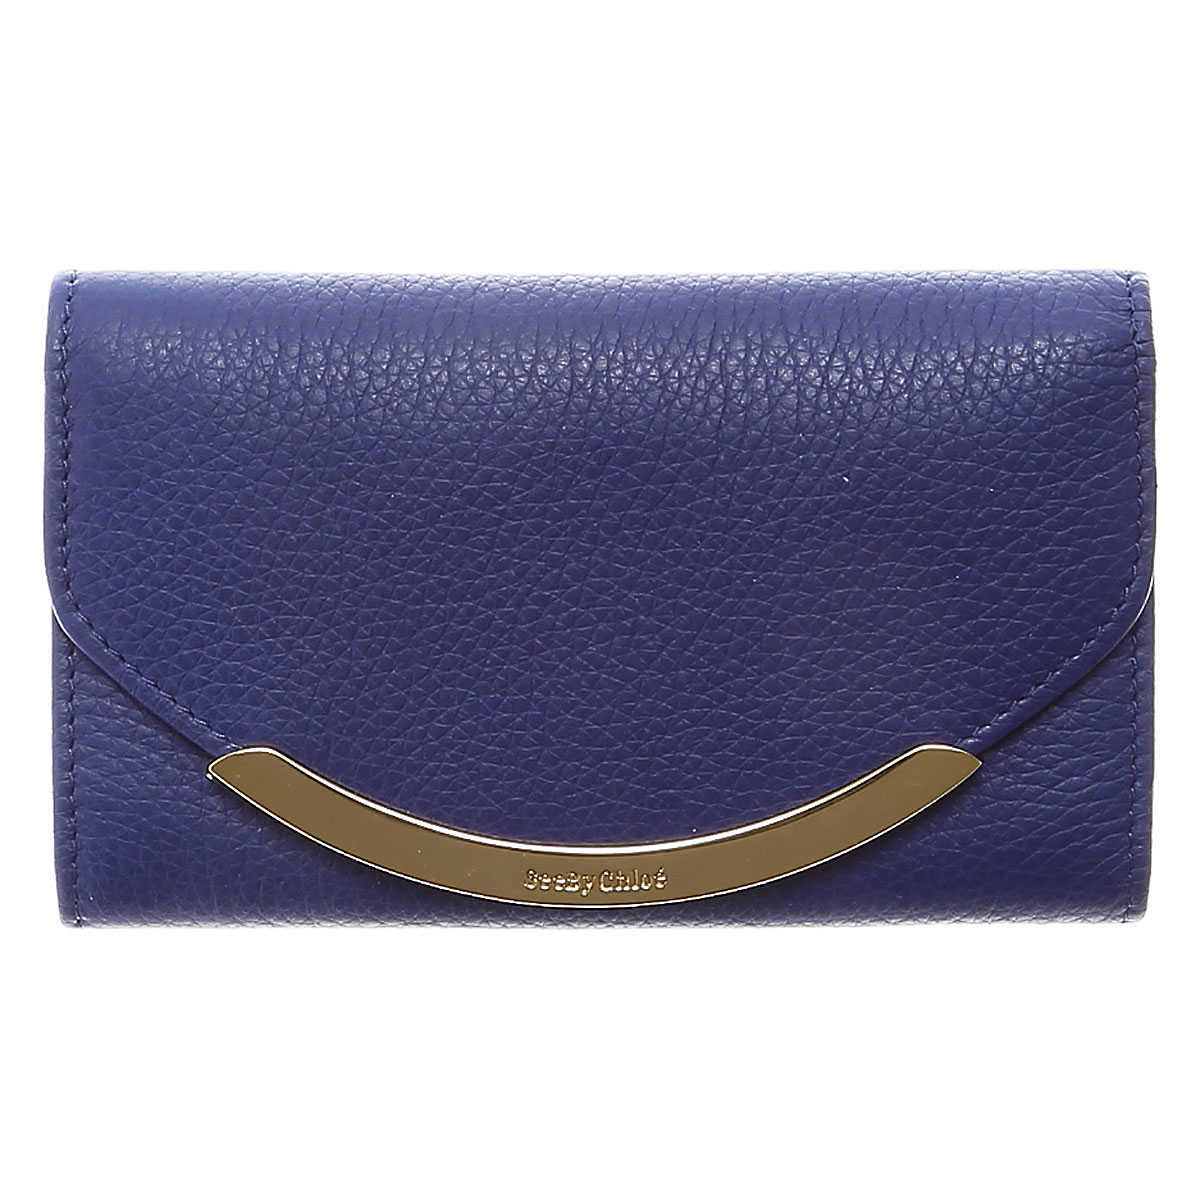 See By Chloe Wallet for Women Blue Canada - GOOFASH - Womens WALLETS